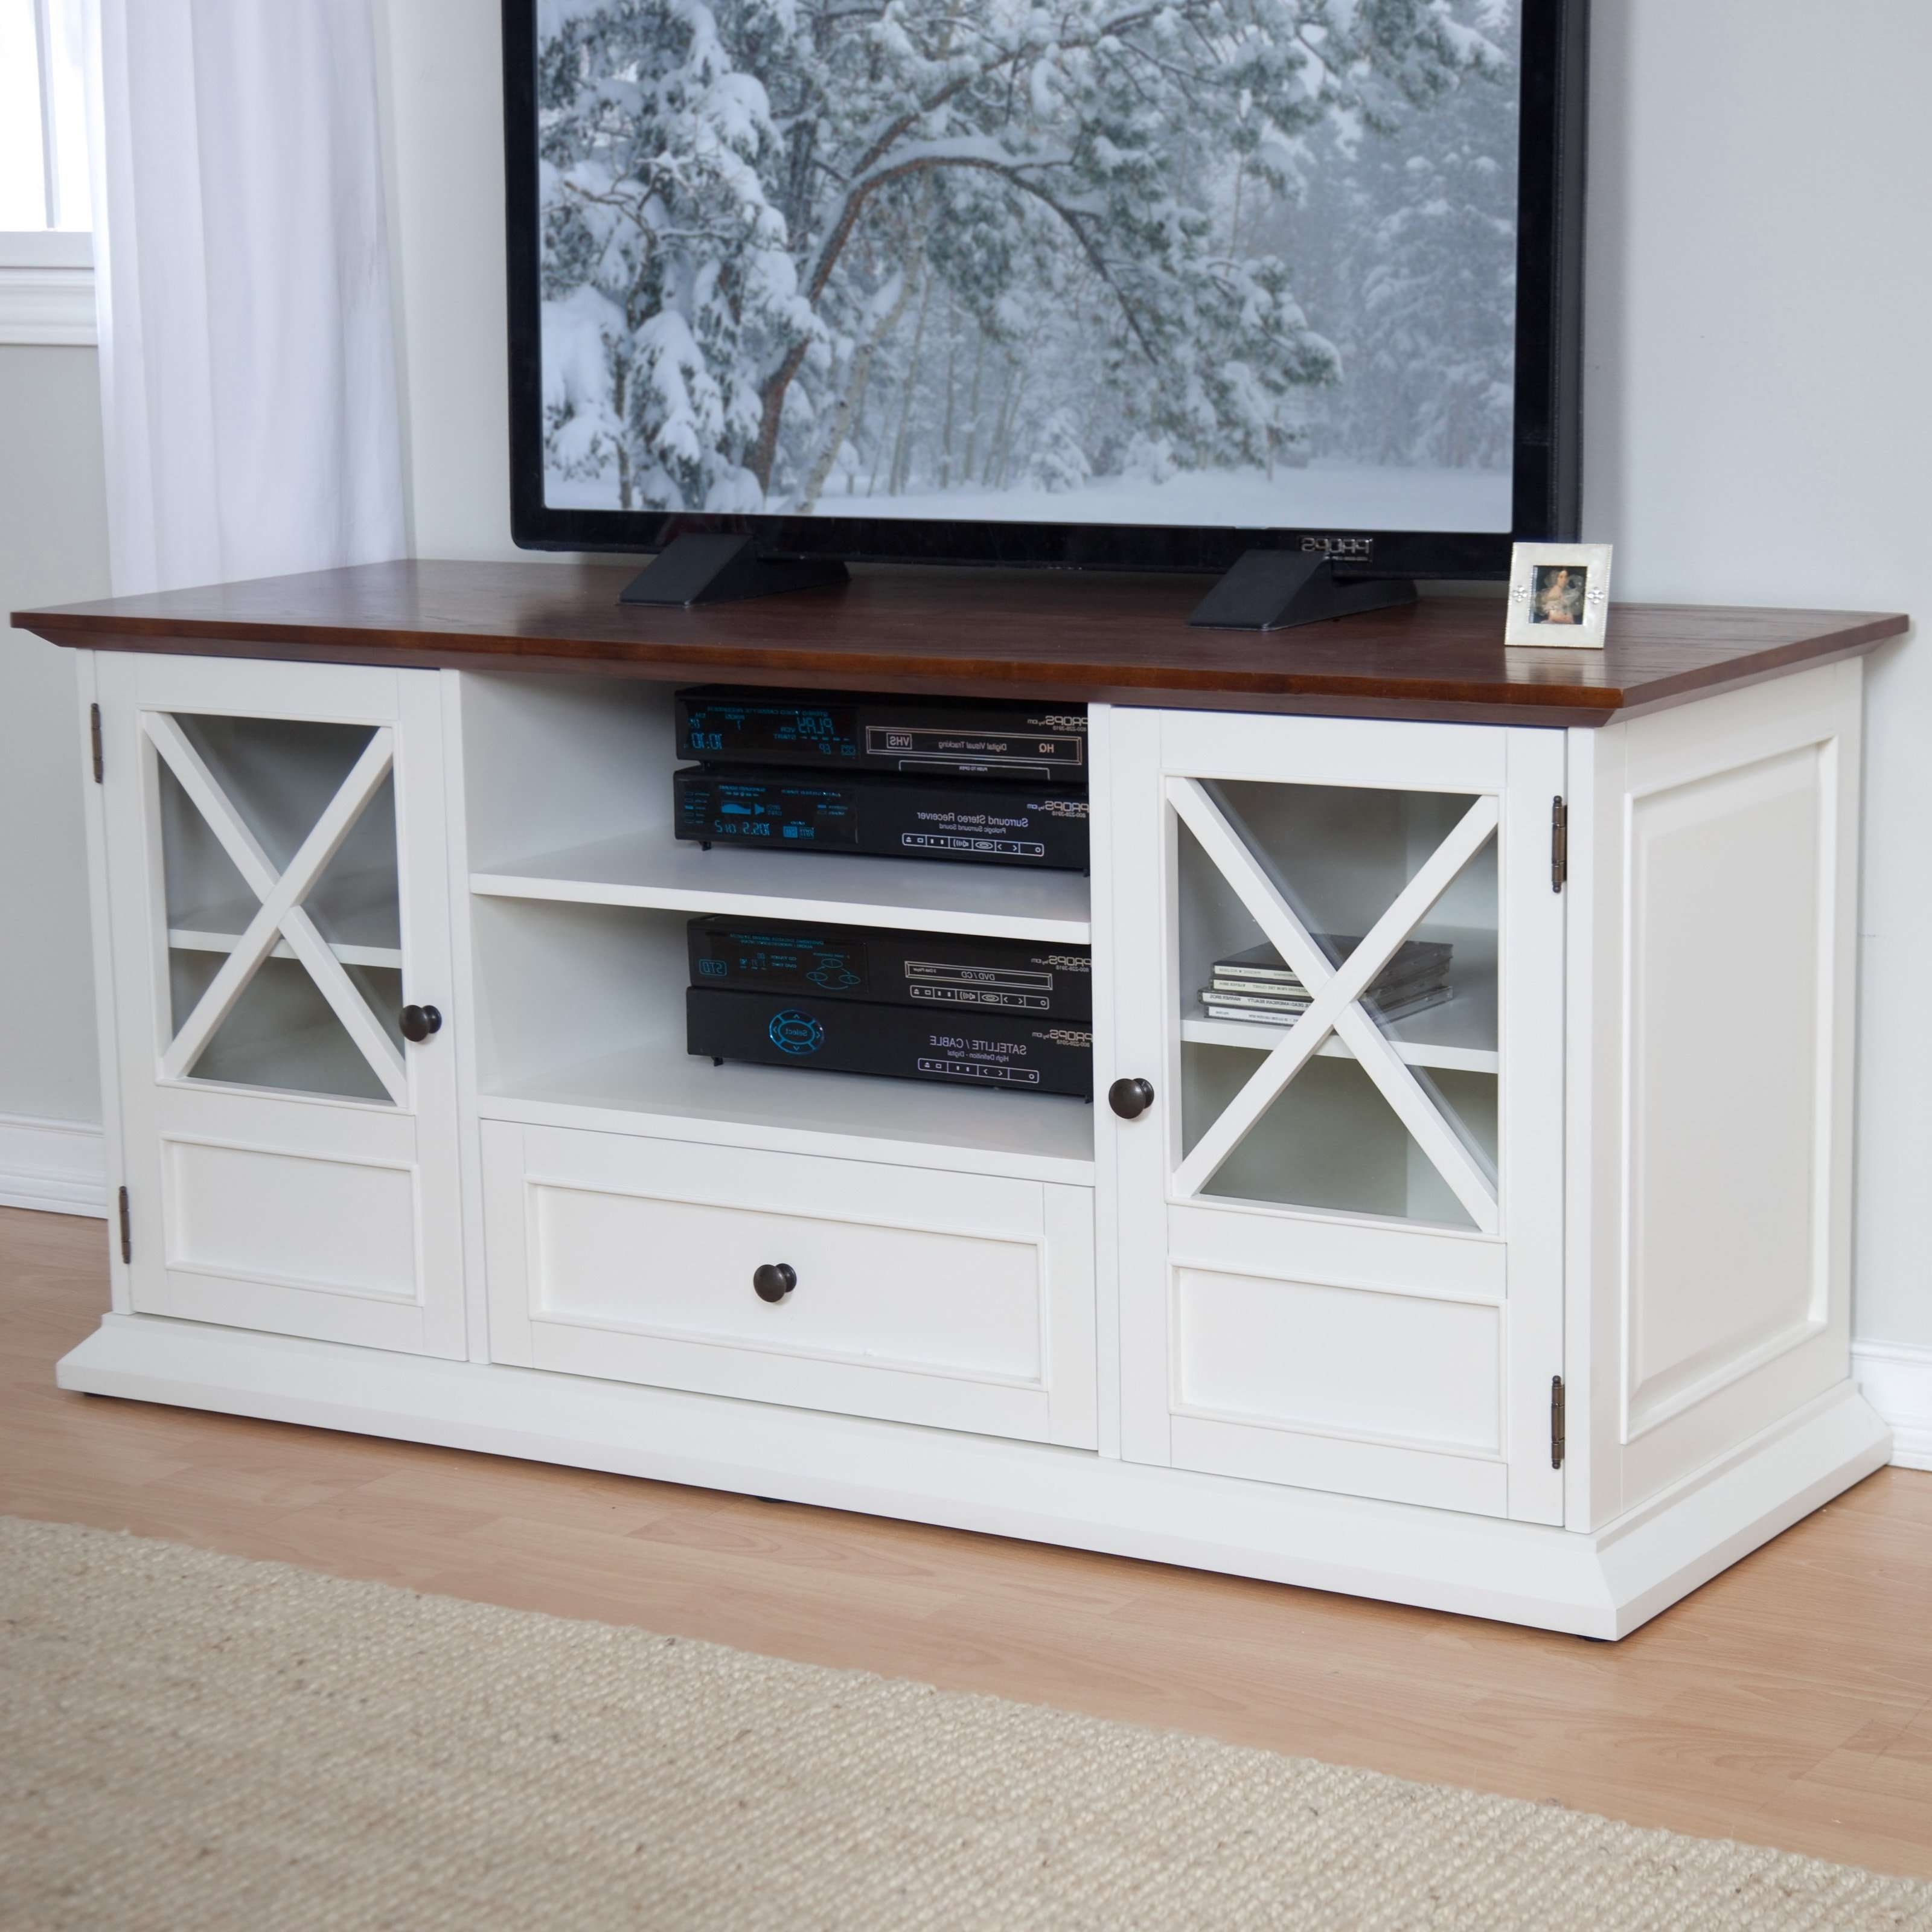 Bedroom Design : Awesome Small Corner Tv Stand Wooden Tv Stands 32 With White Wood Corner Tv Stands (View 7 of 15)